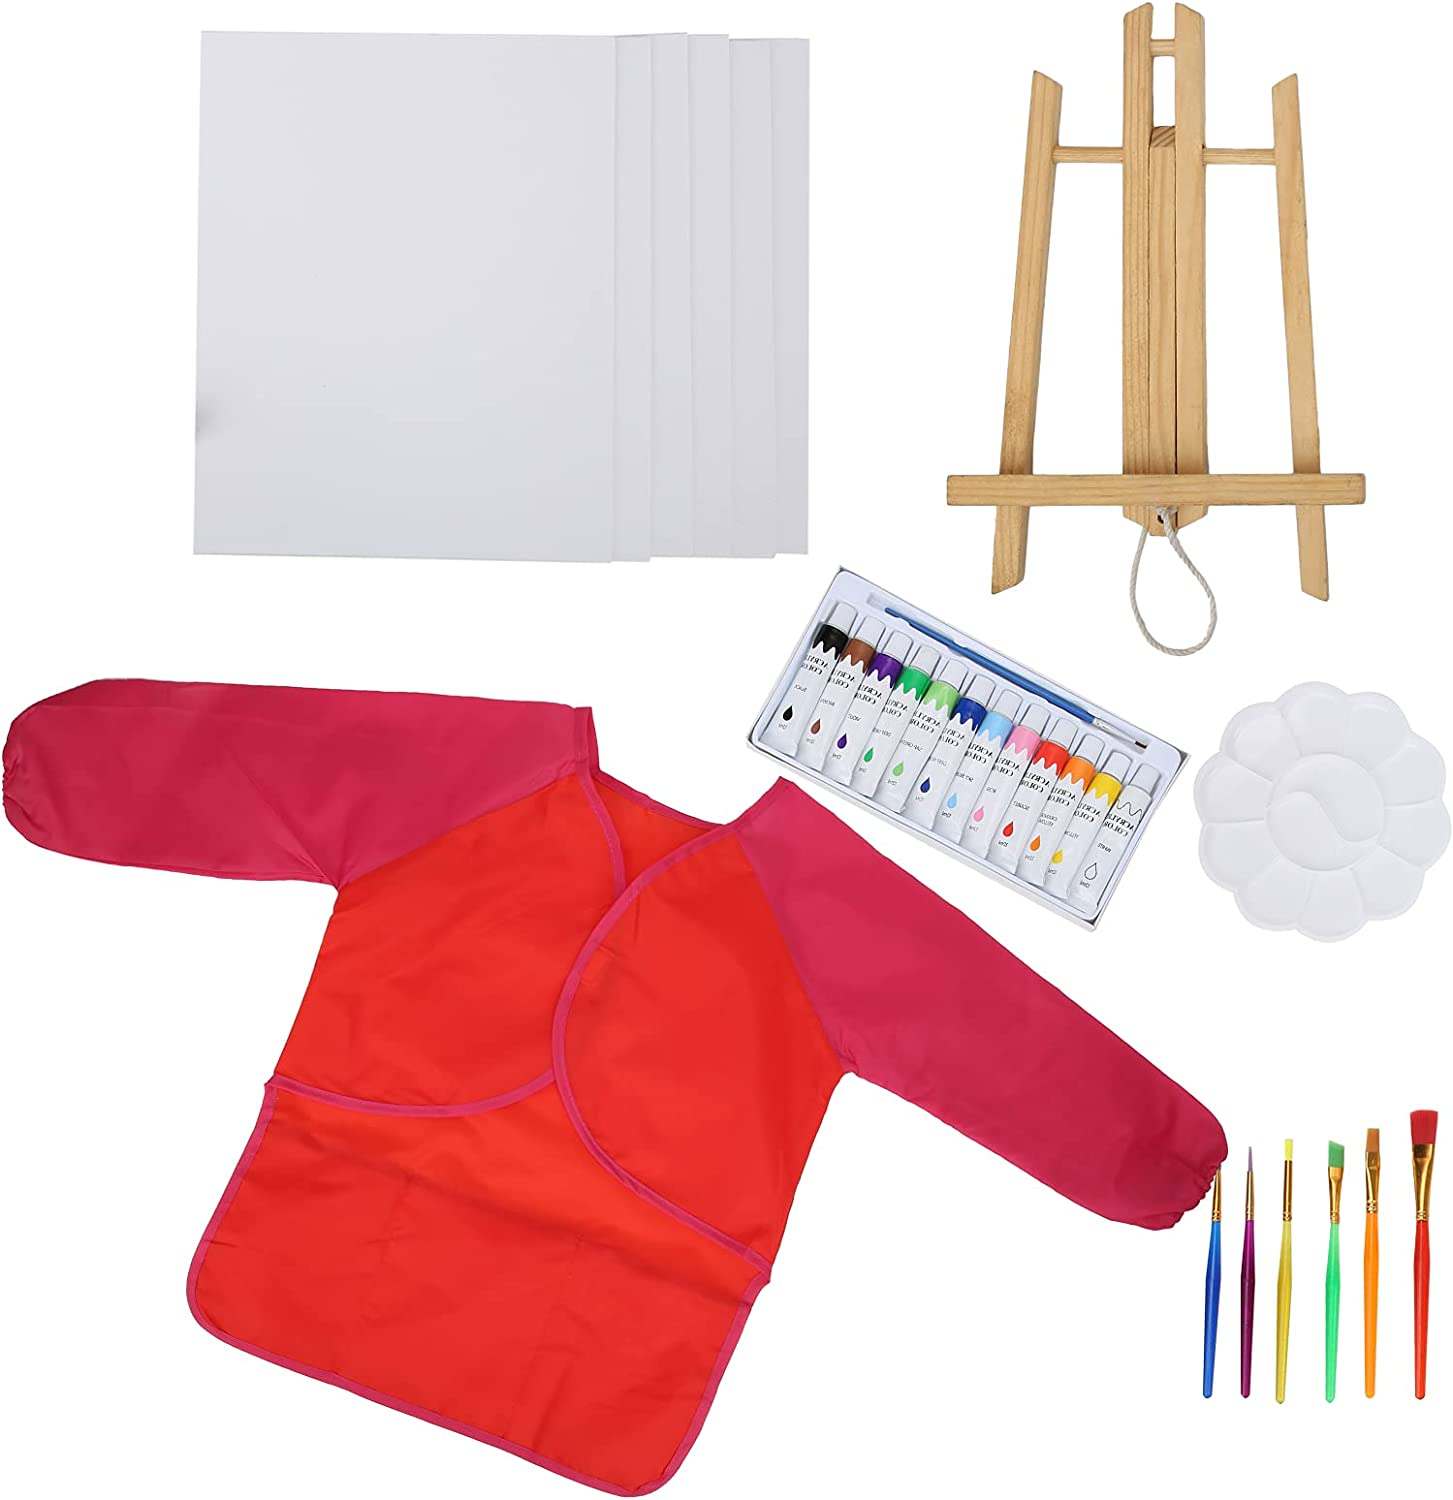 Max 57% OFF DIY Acrylic Paint Set Designed Arlington Mall Kids P for Quality Brushes